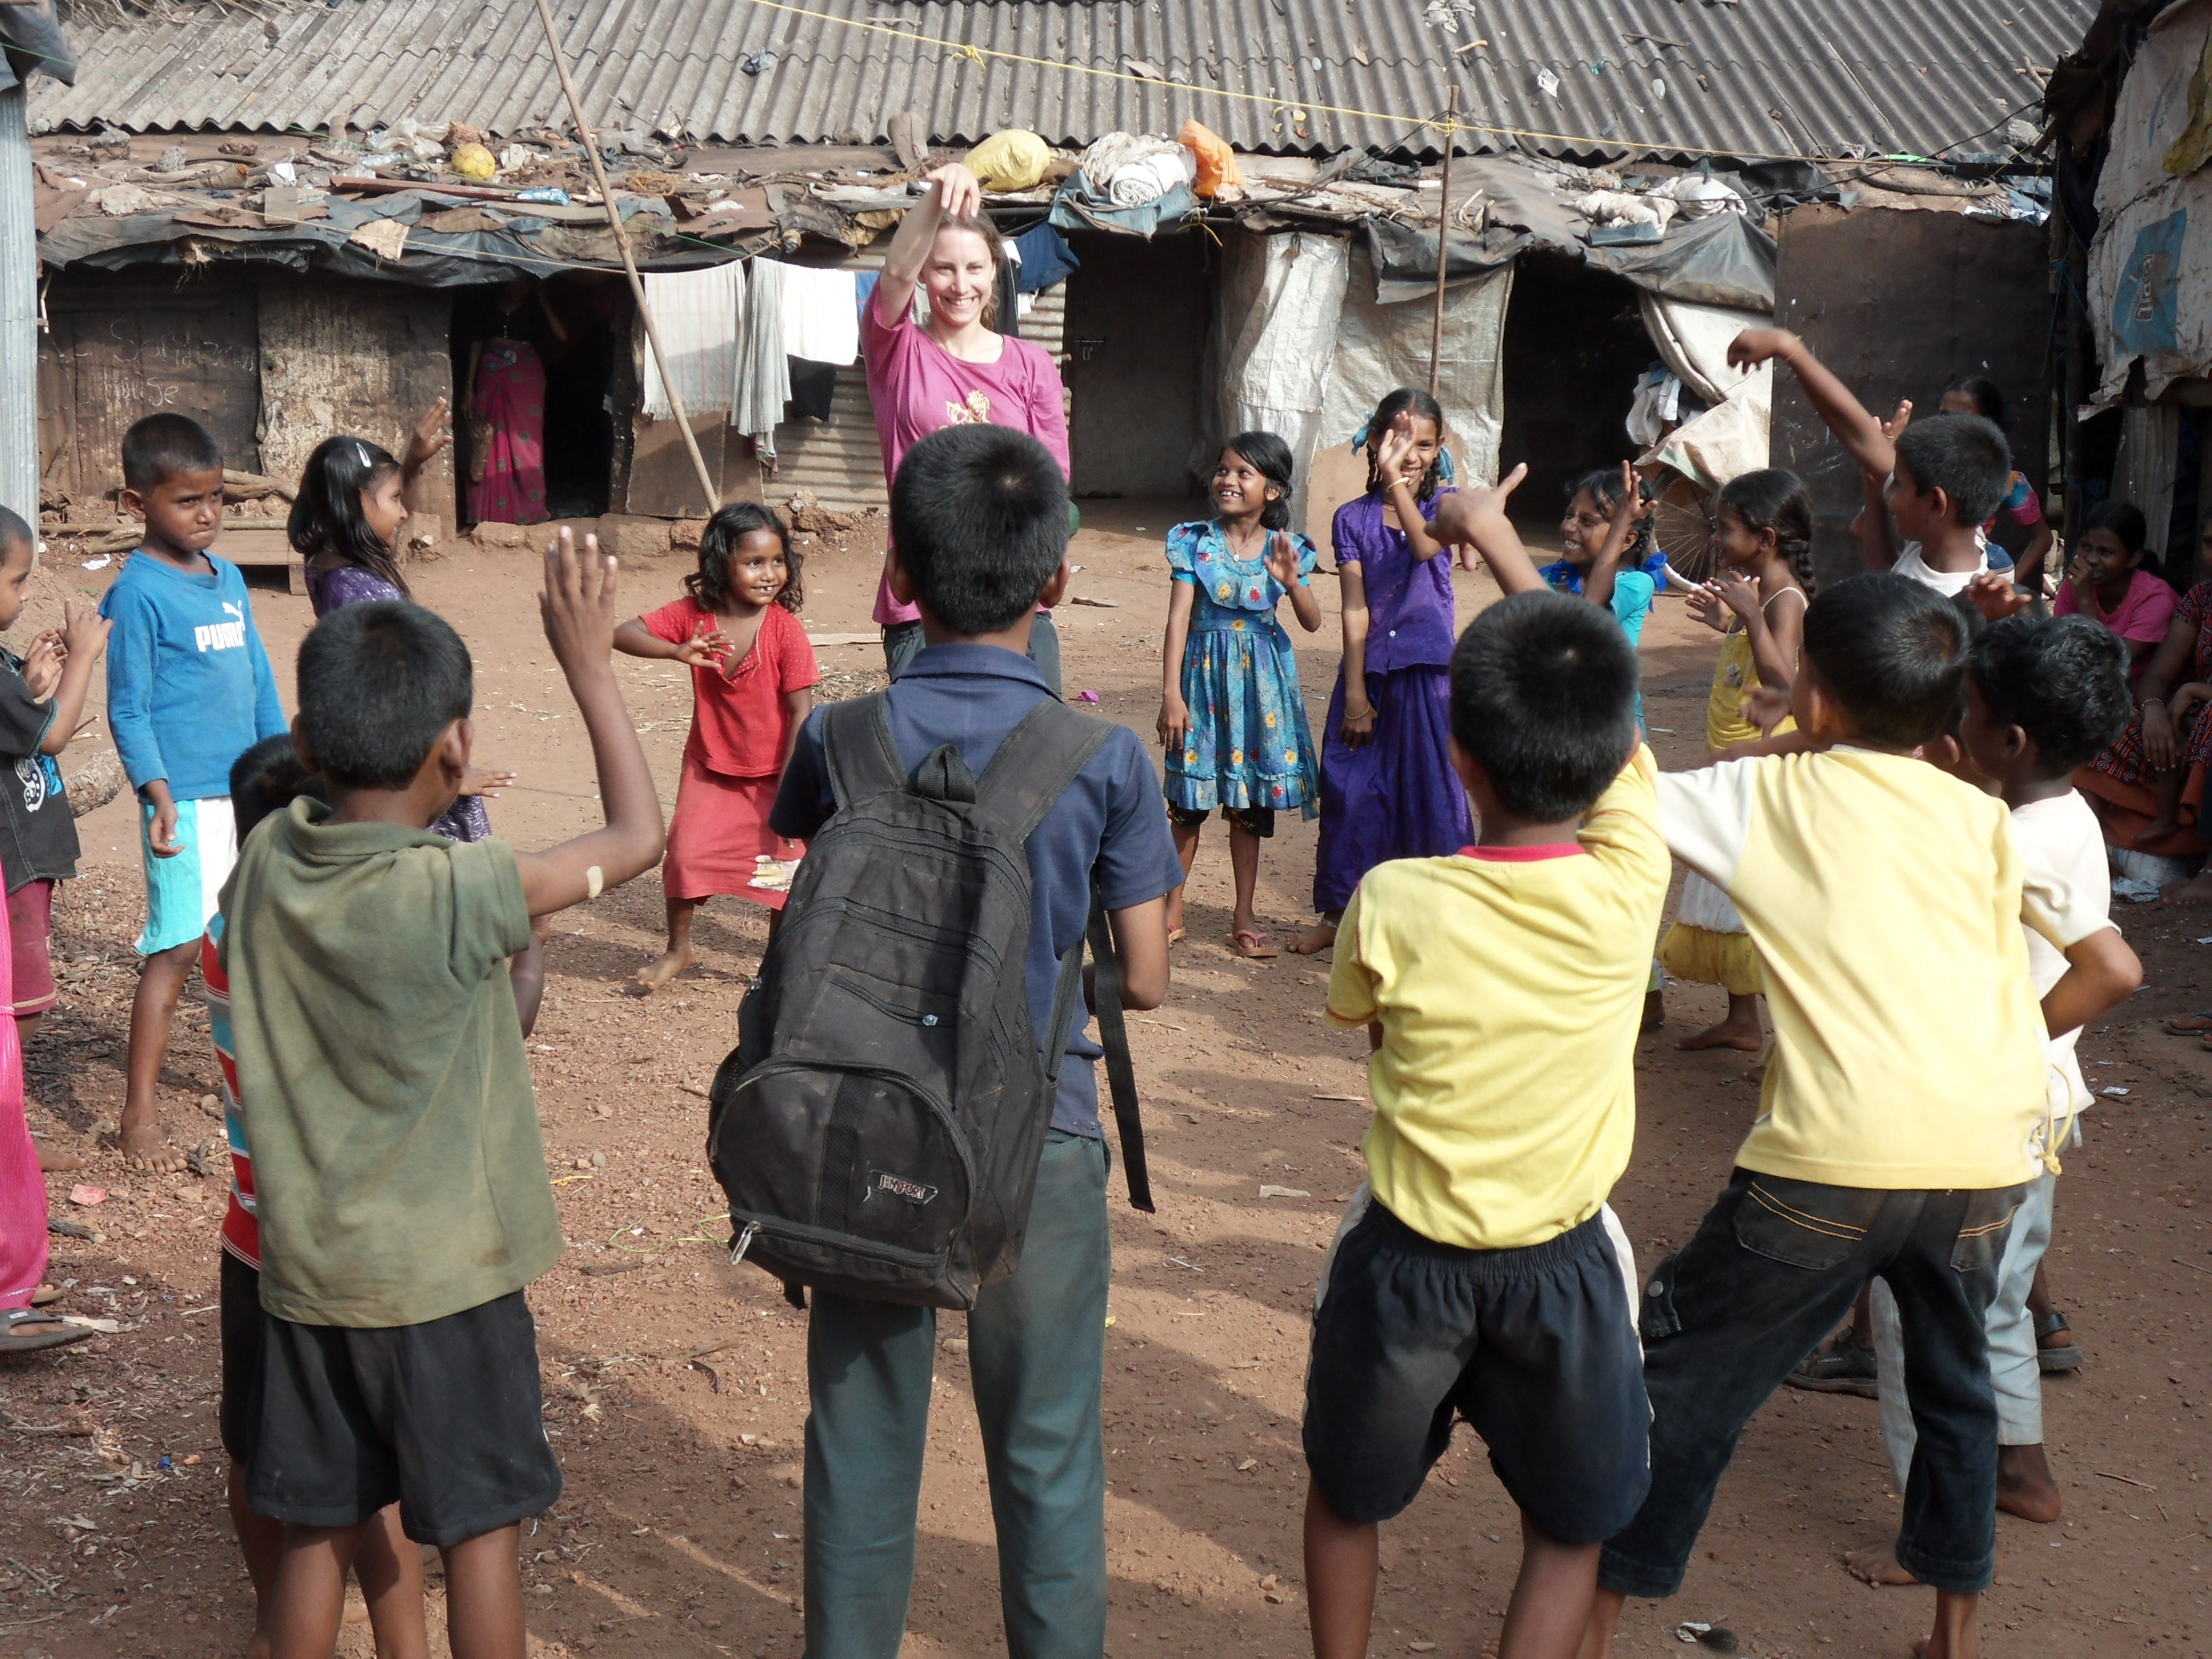 Dancing in the slum